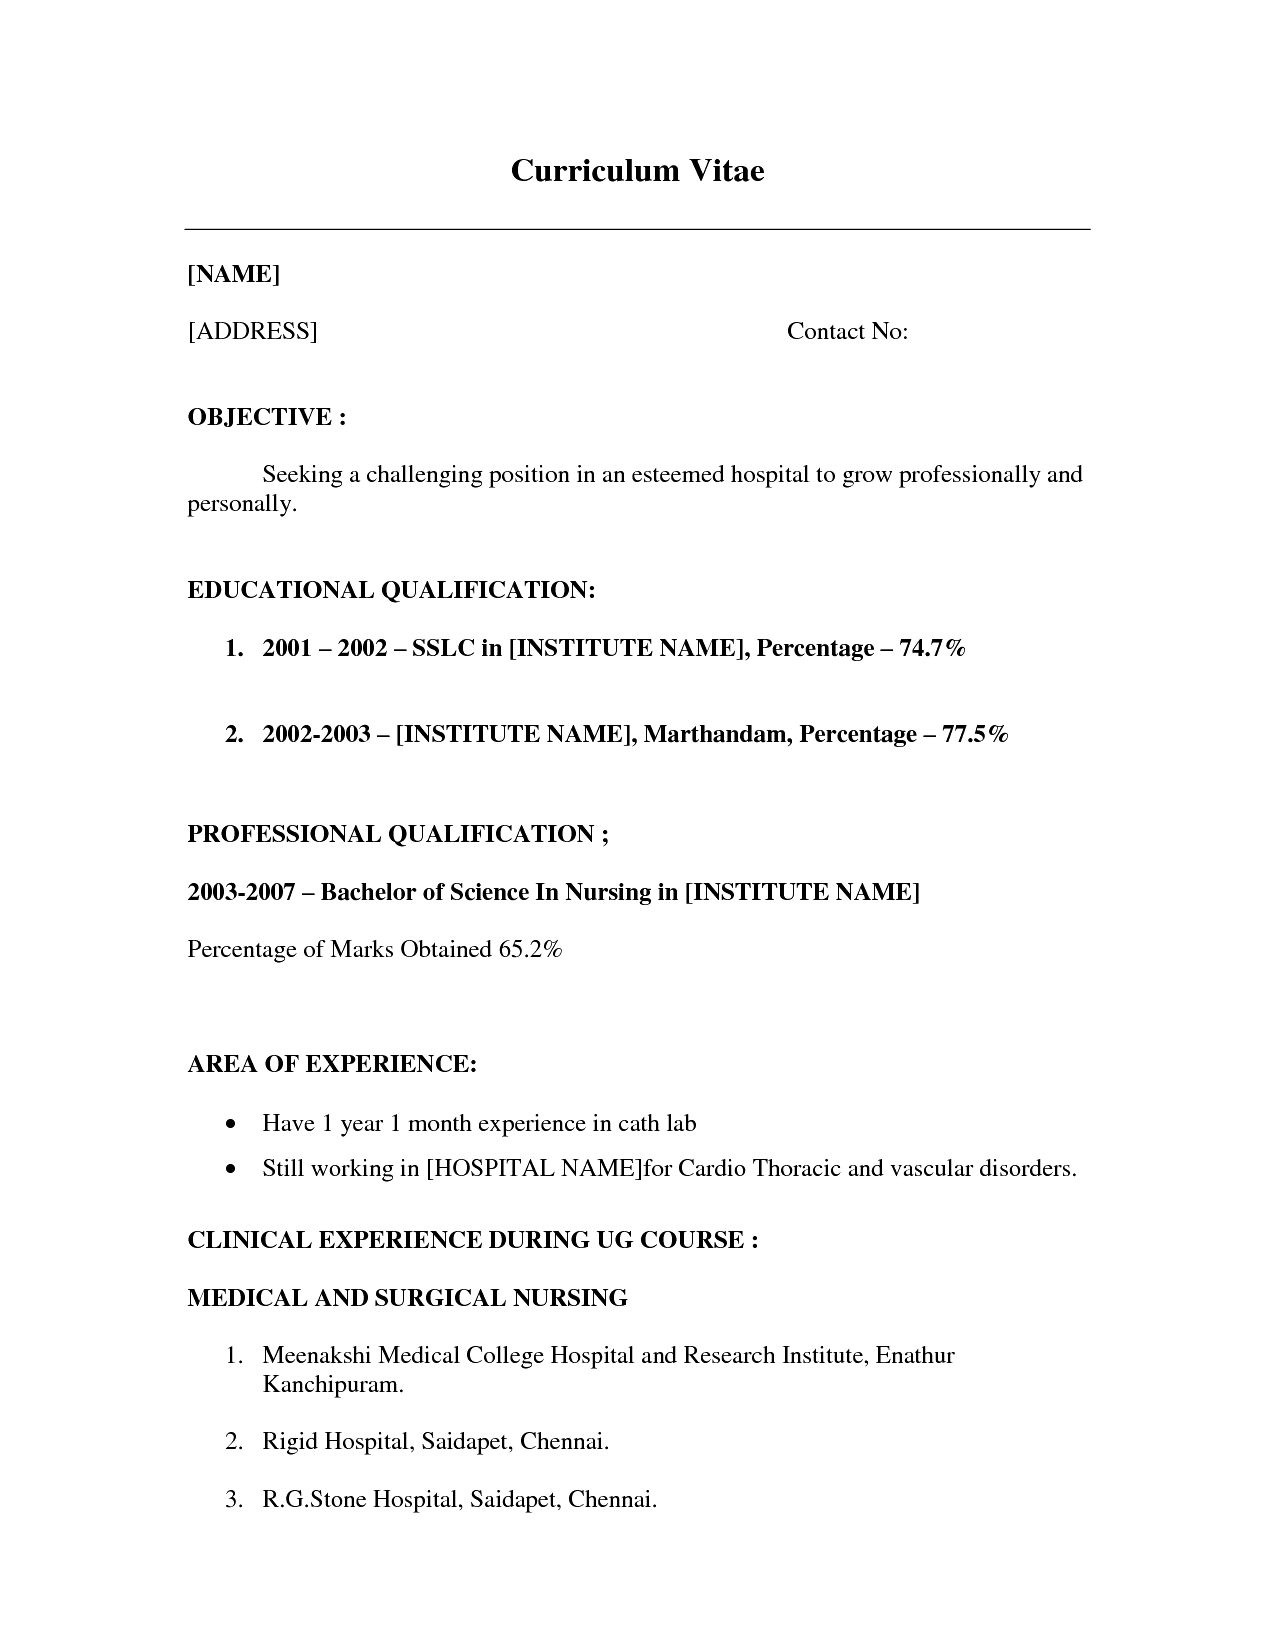 Sample Cover Letter For High School Student With No Work Experience Cover Letters Mogenk Paper Great Job Resume Samples Resume Examples No Experience Jobs